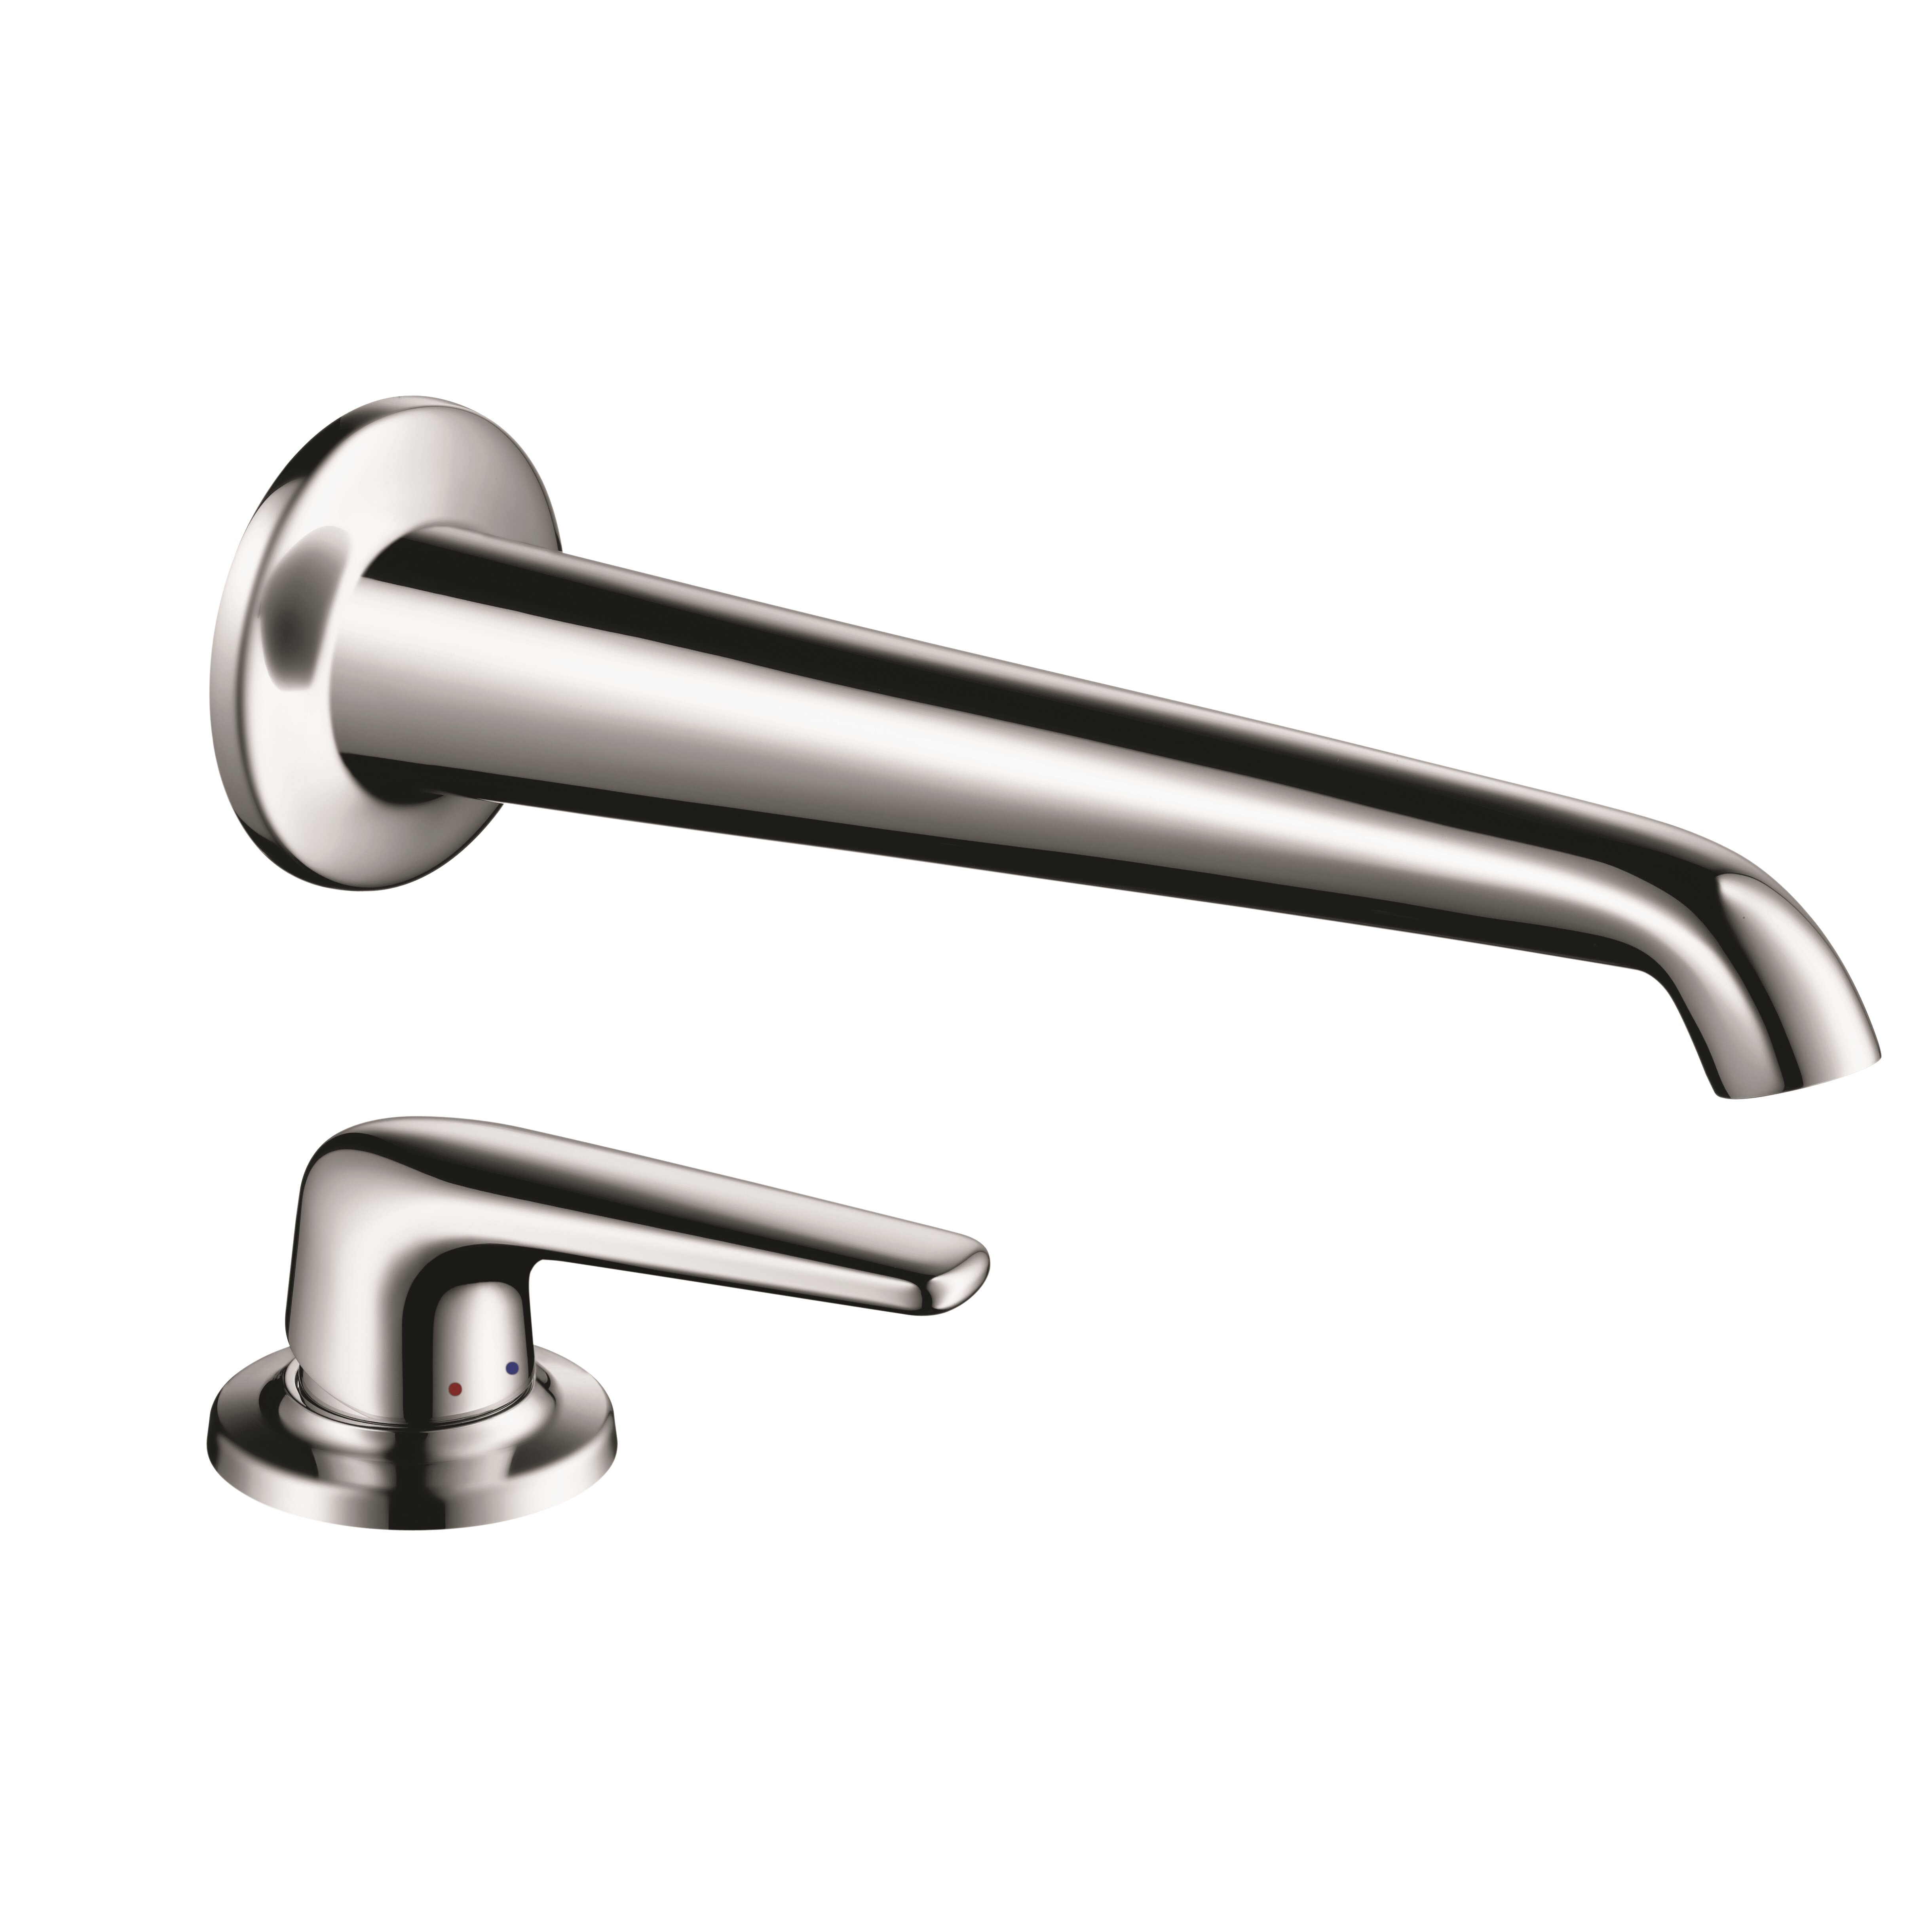 Bathtub Single Handle Faucet : ... Bouroullec Single Handle Wall Mounted Tub Only Faucet Trim by Axor